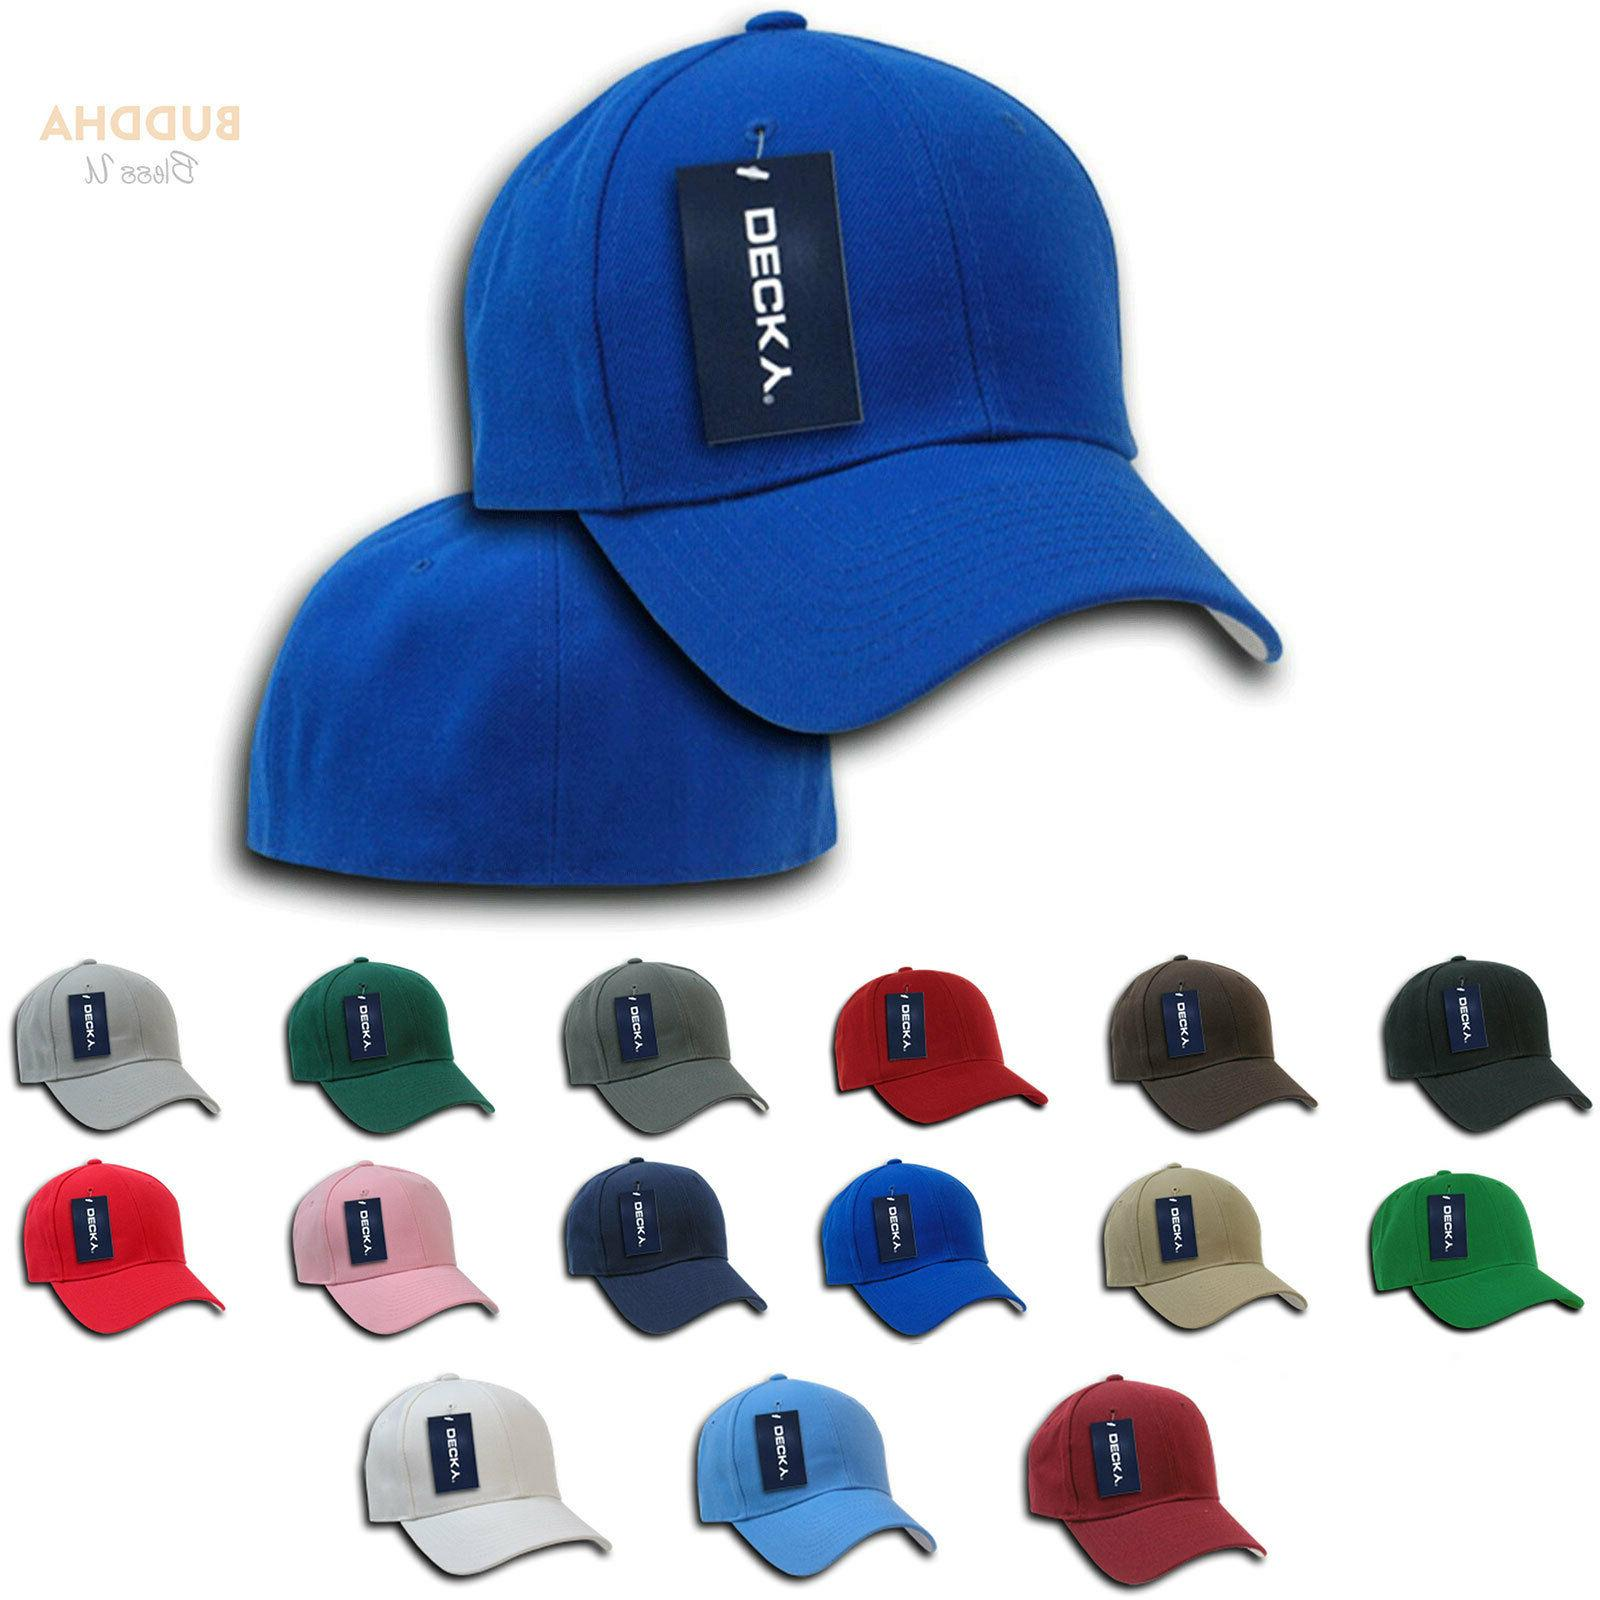 1 Dozen Plain Fitted Bill Hats Caps Wholesale